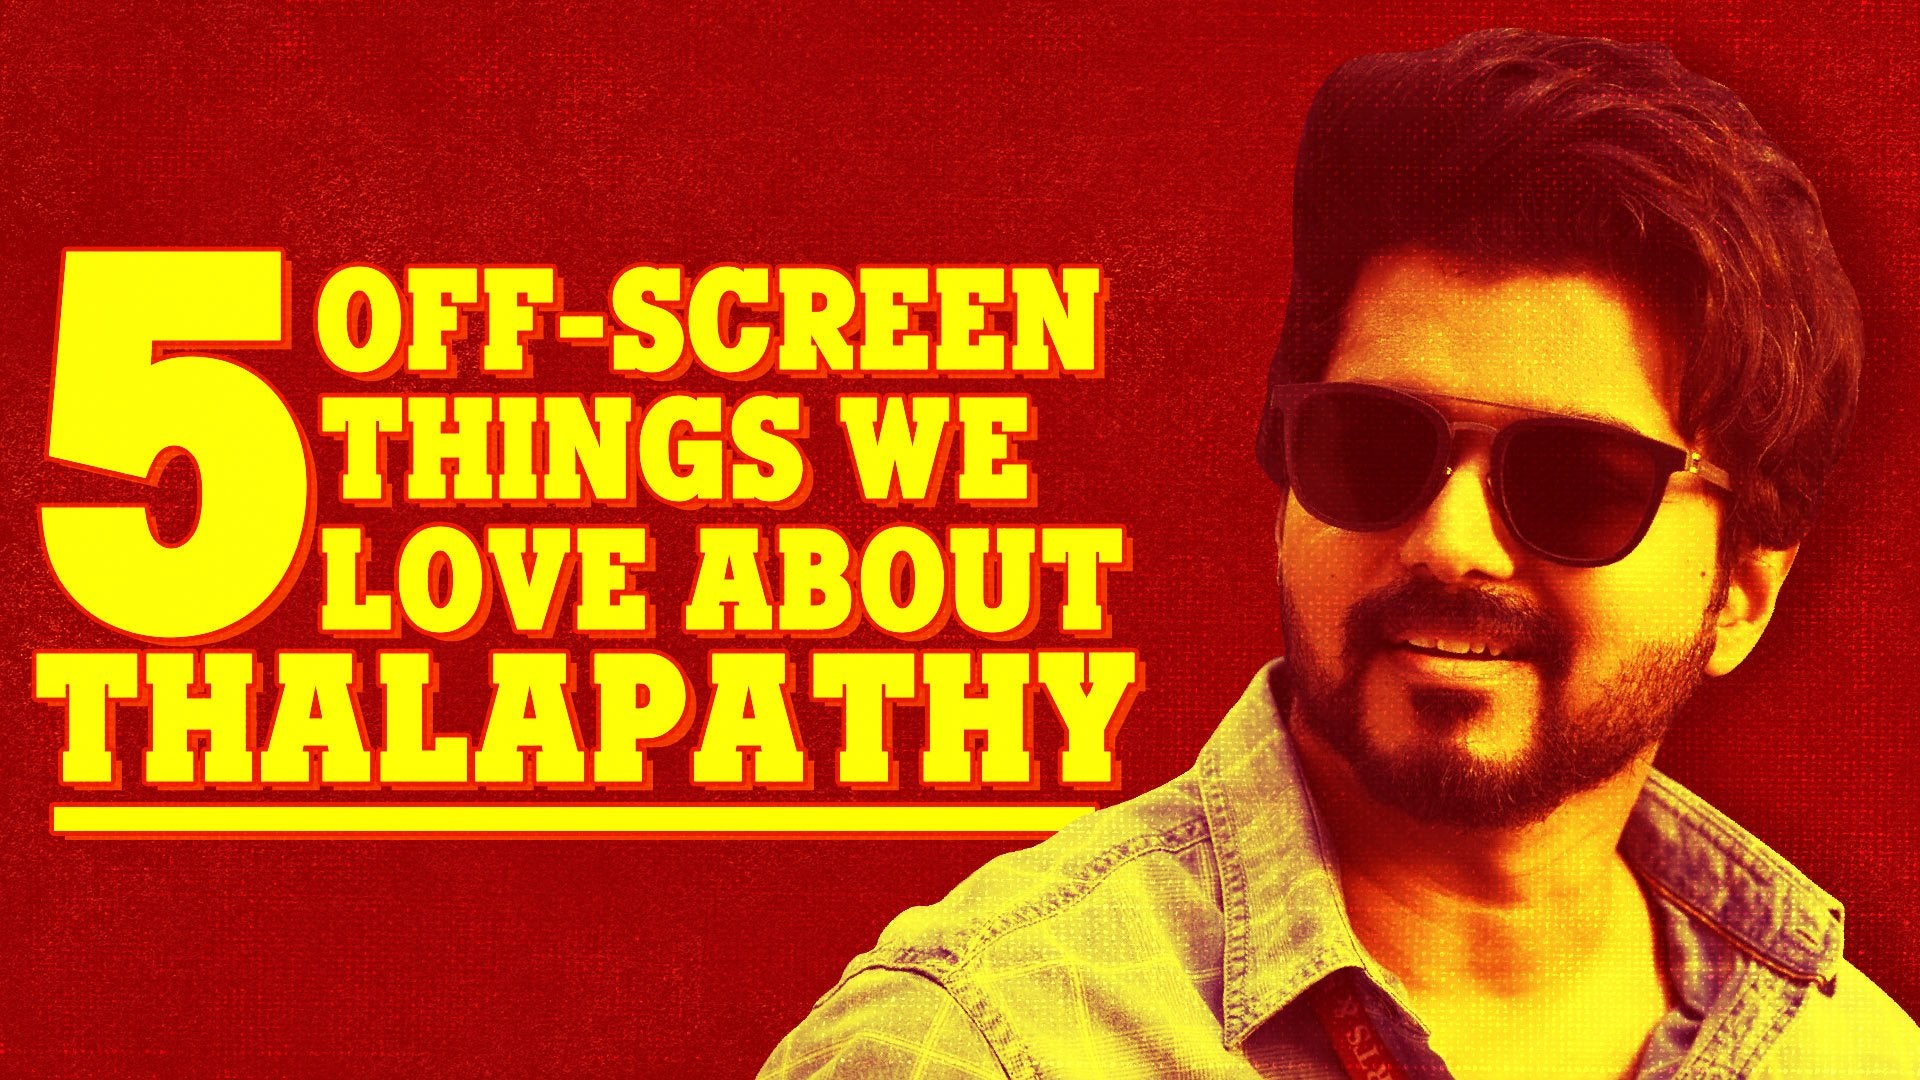 5 Off-screen things we love about Thalapathy